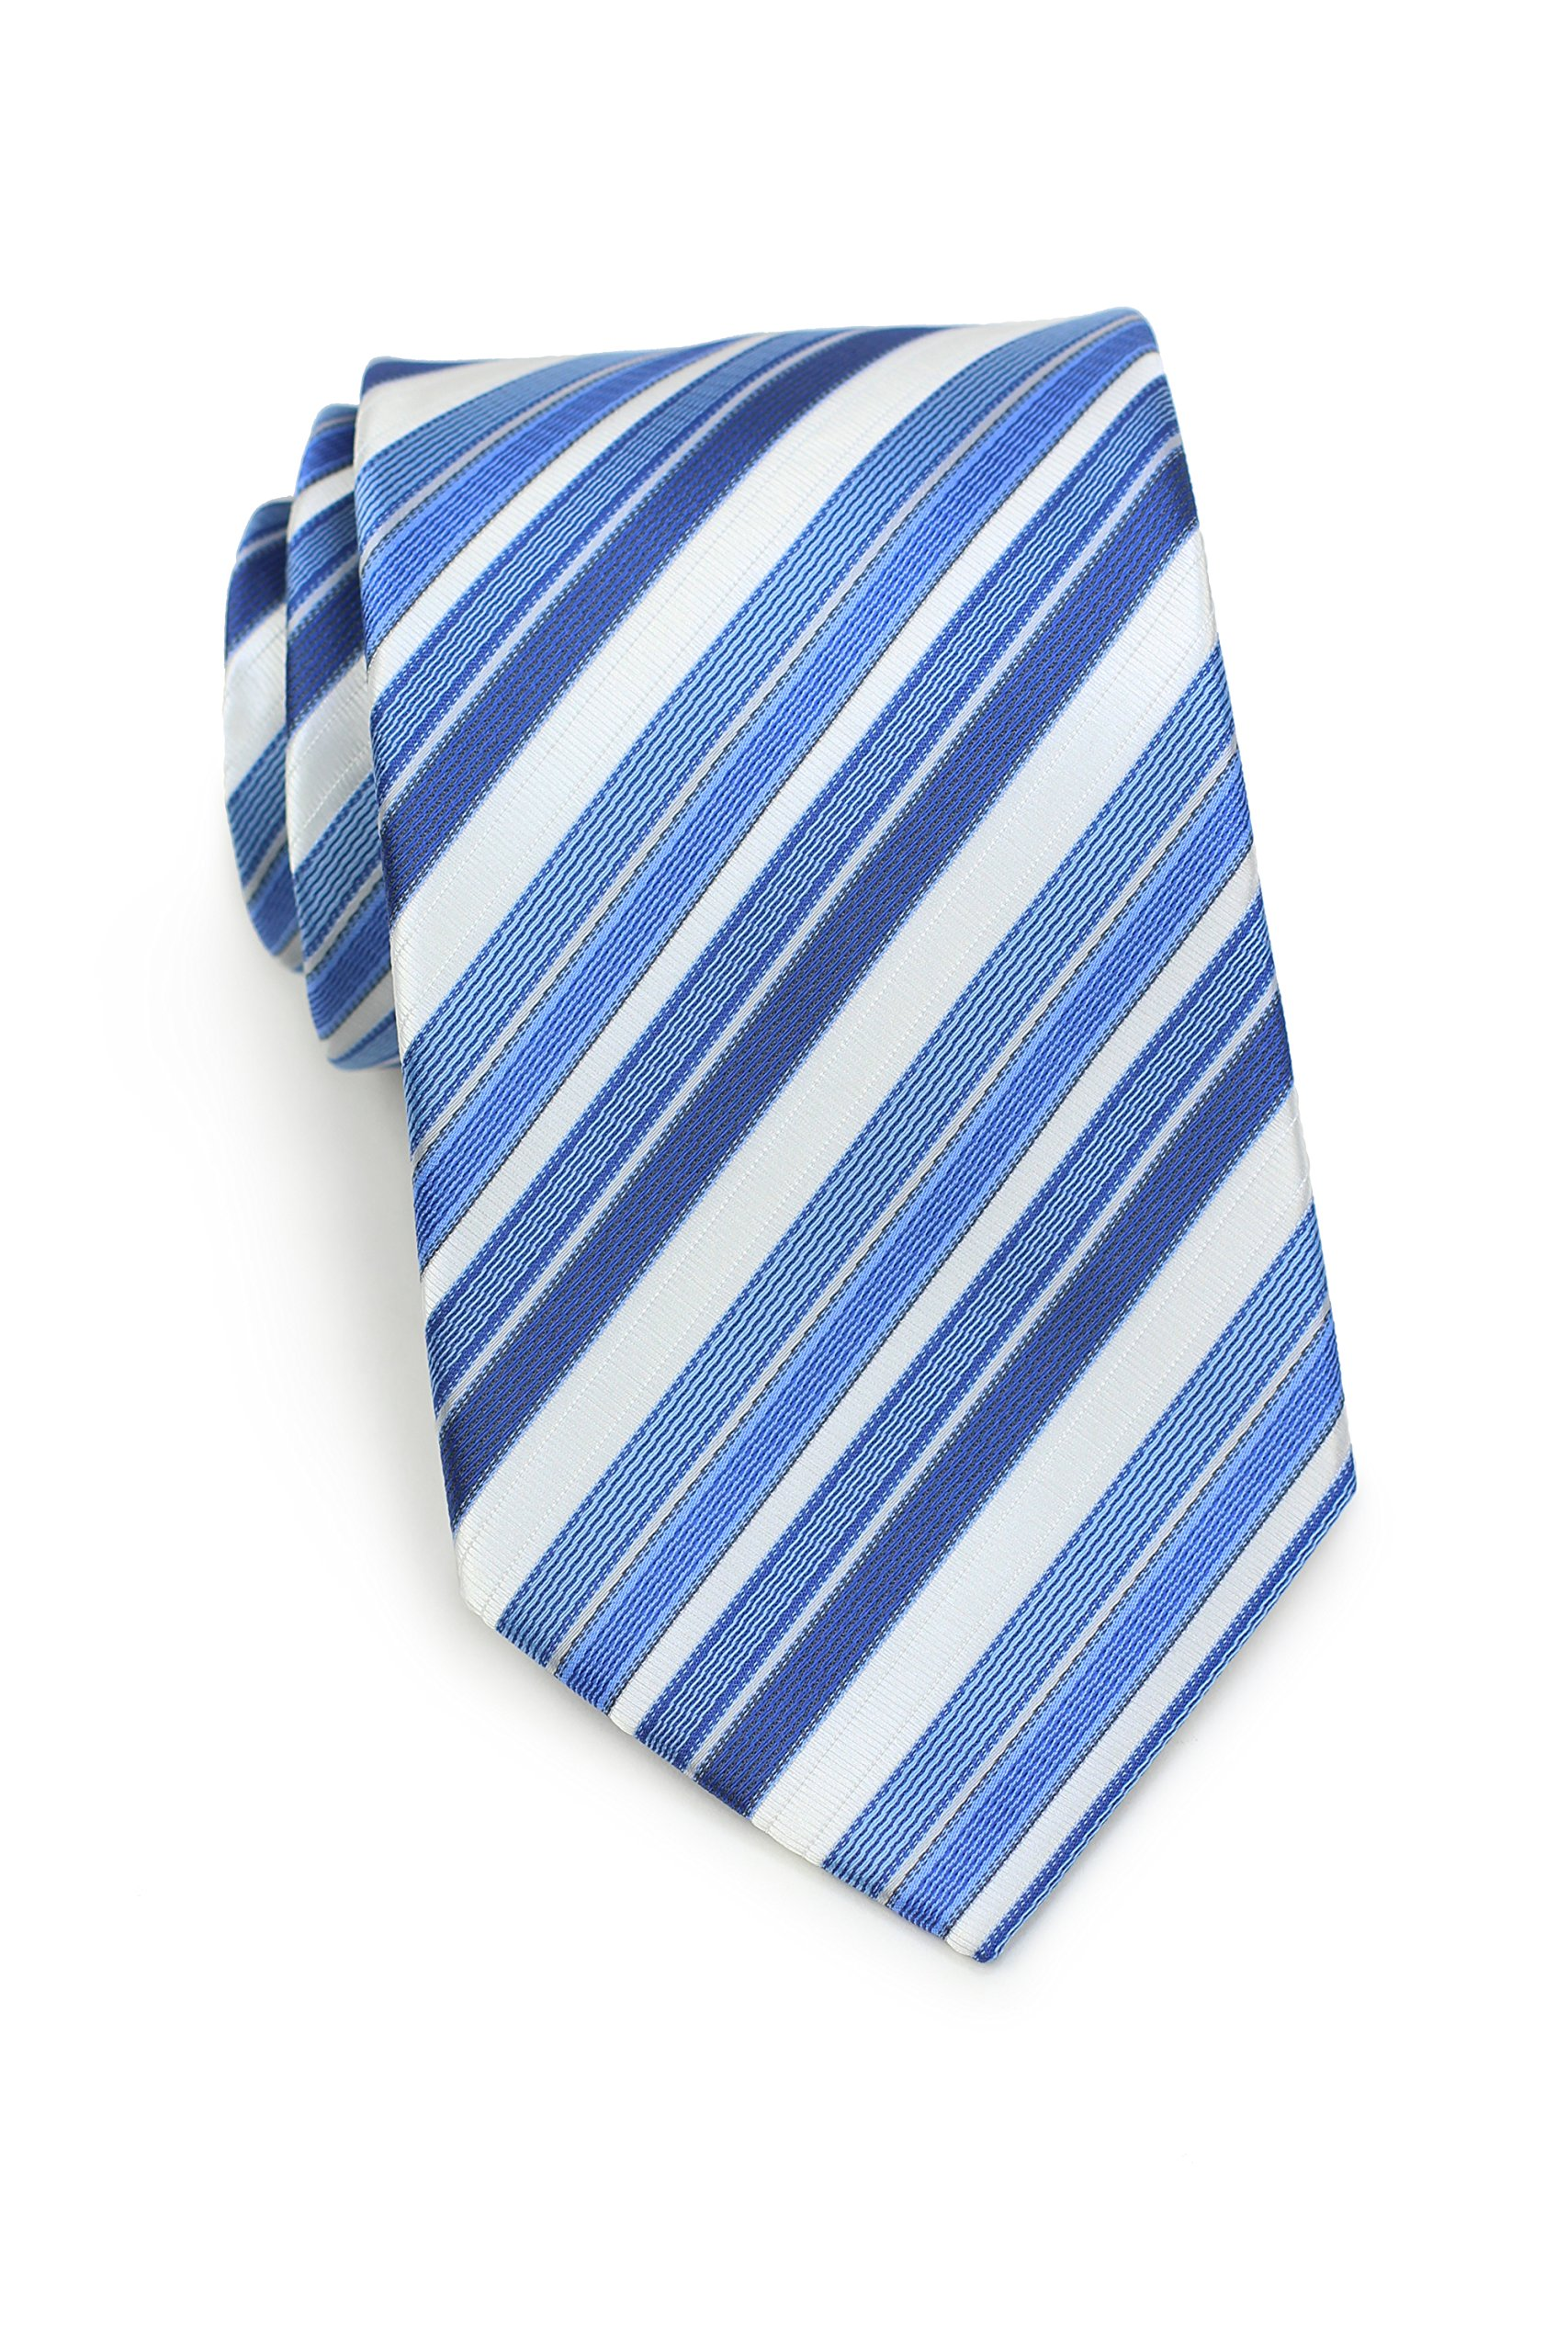 Bows-N-Ties Men's Necktie Bright Stripe Microfiber Tie Satin 3.25 Inches (Summer Blue and White)